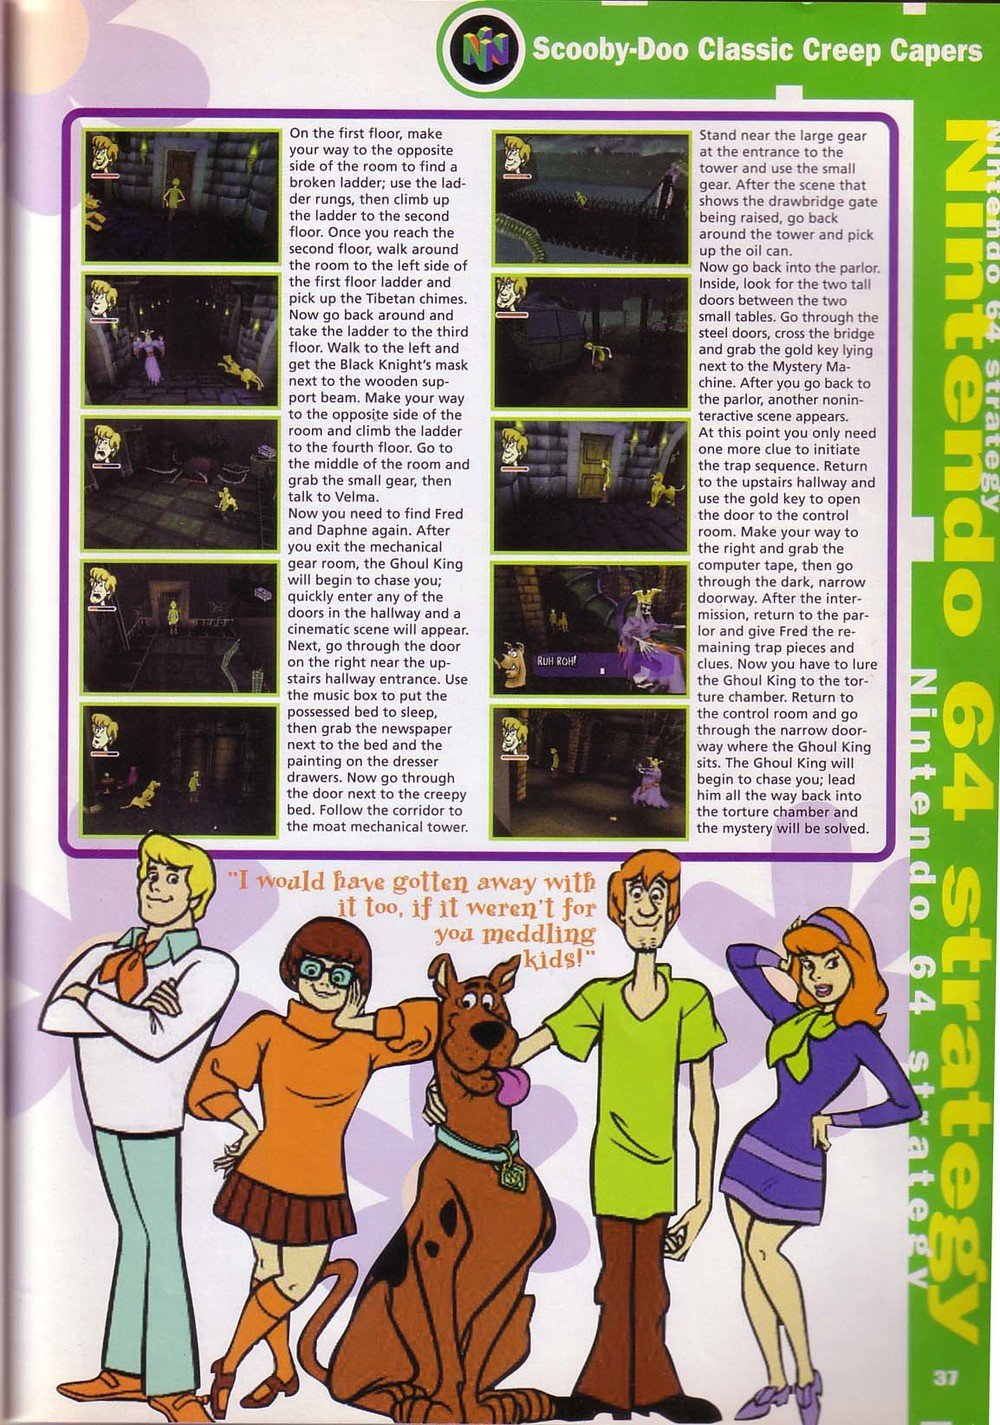 TipsandTricks_Feb_2001_ScoobyDoo_pg5_Strategy.jpg